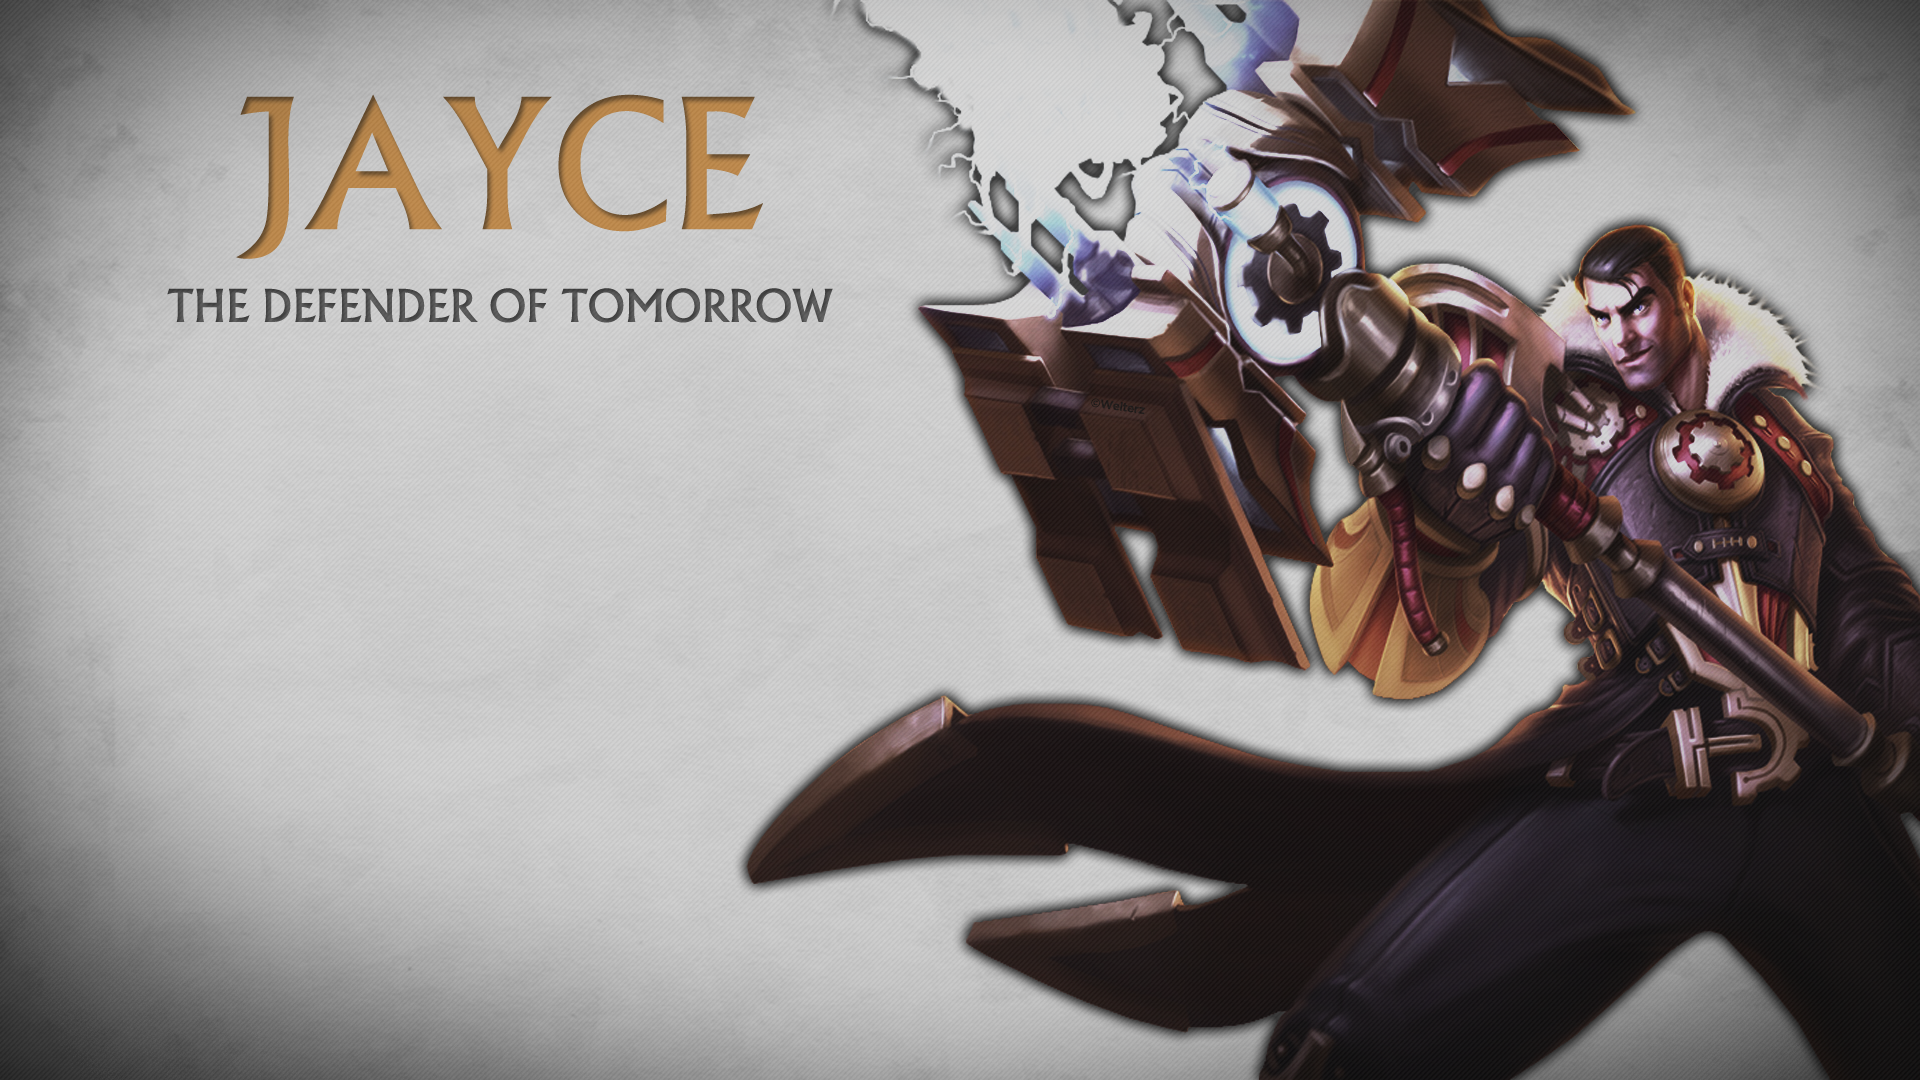 jayce_wallpaper_by_welterz-d6dh9lc